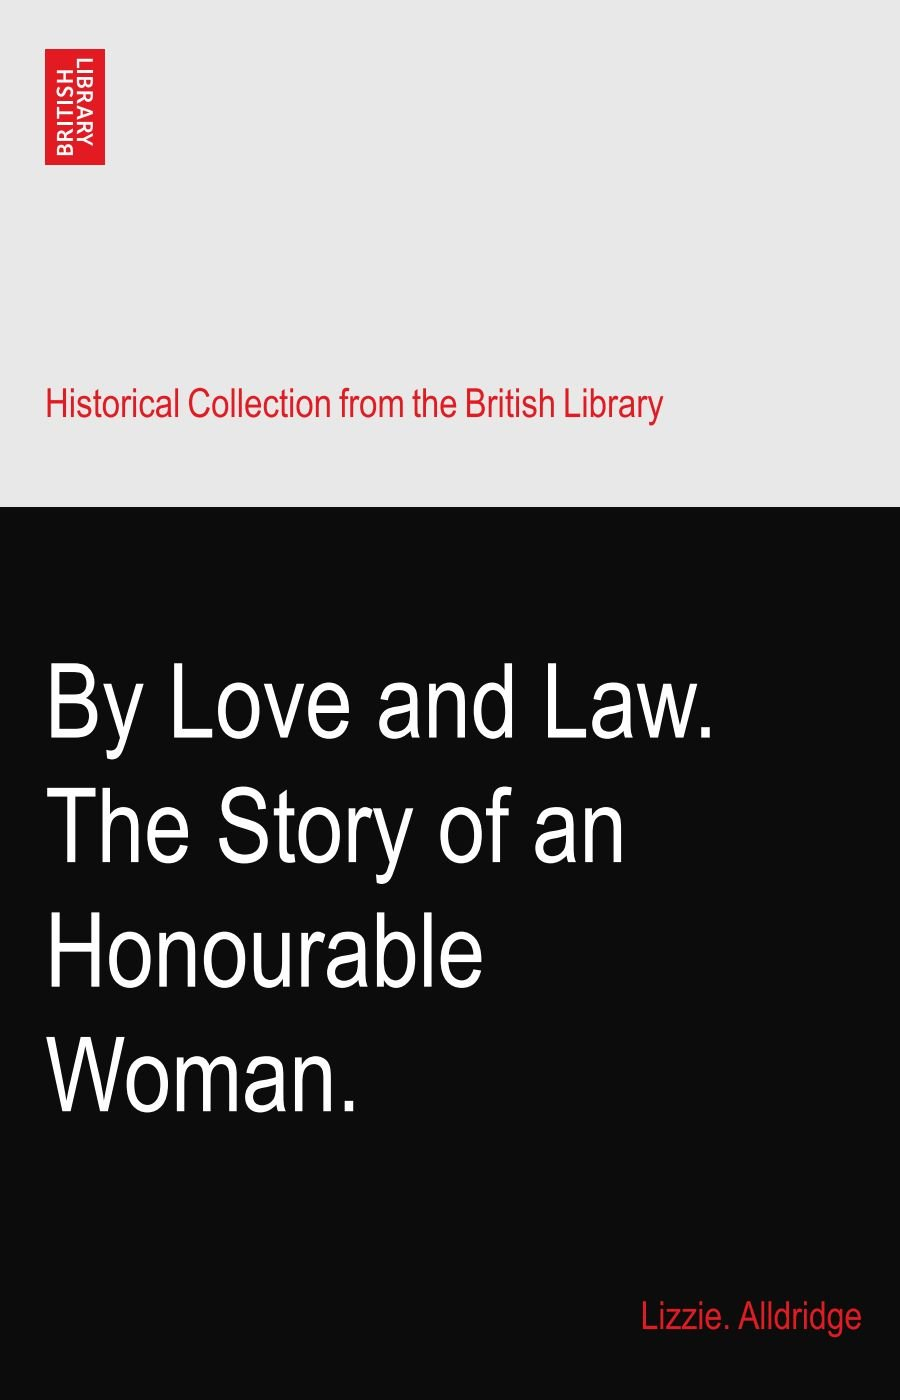 By Love and Law. The Story of an Honourable Woman. PDF